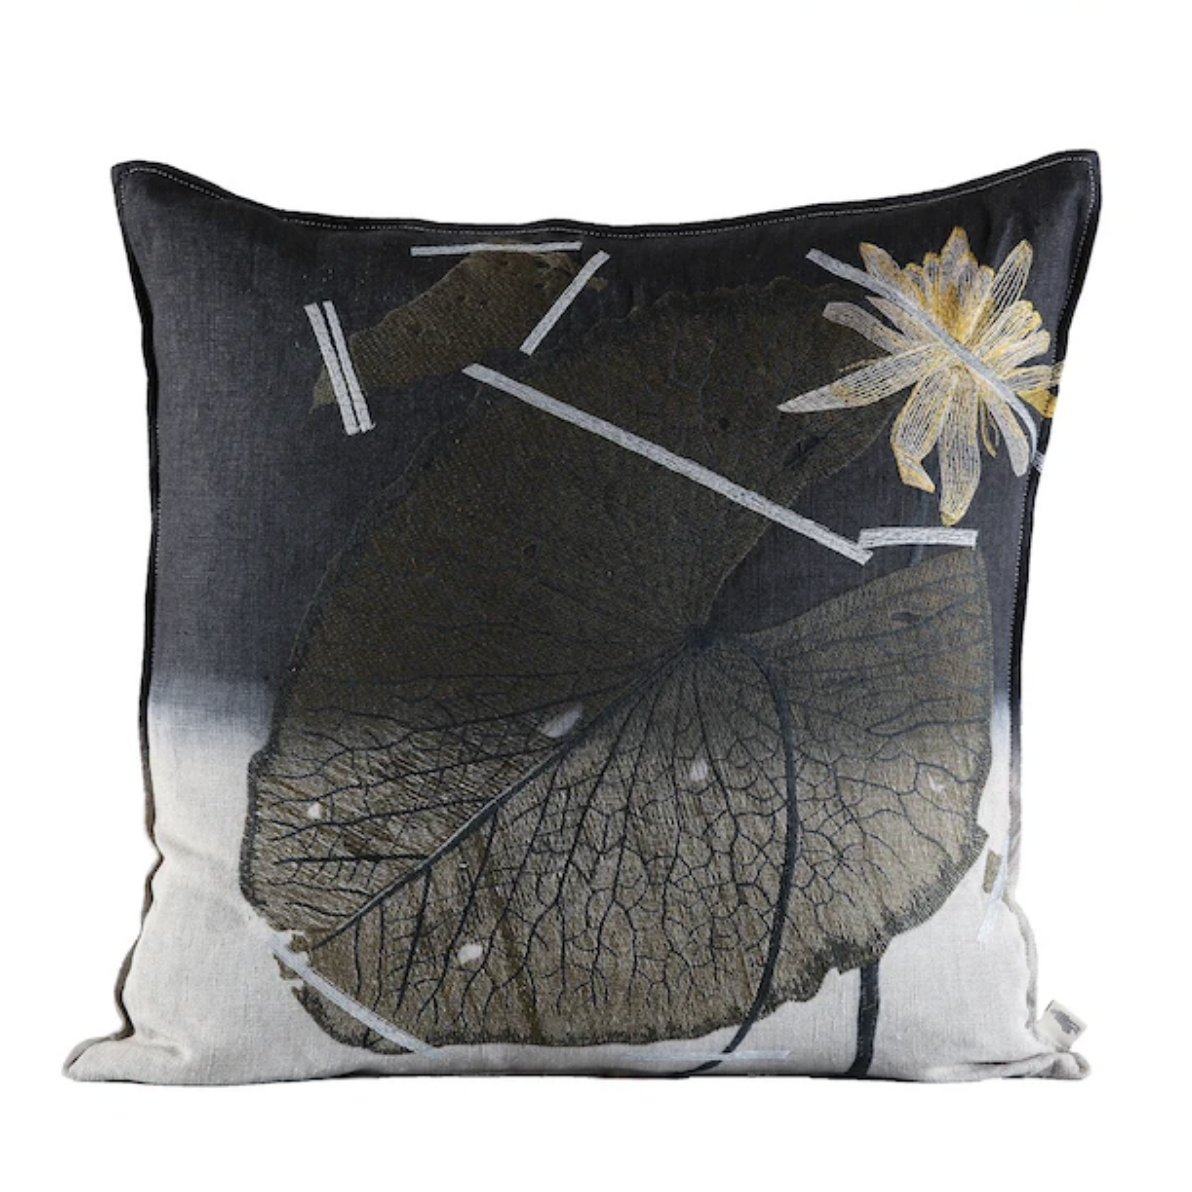 Mopipi Cushion Embroidered Charcoal Dip Dye 60x60cm